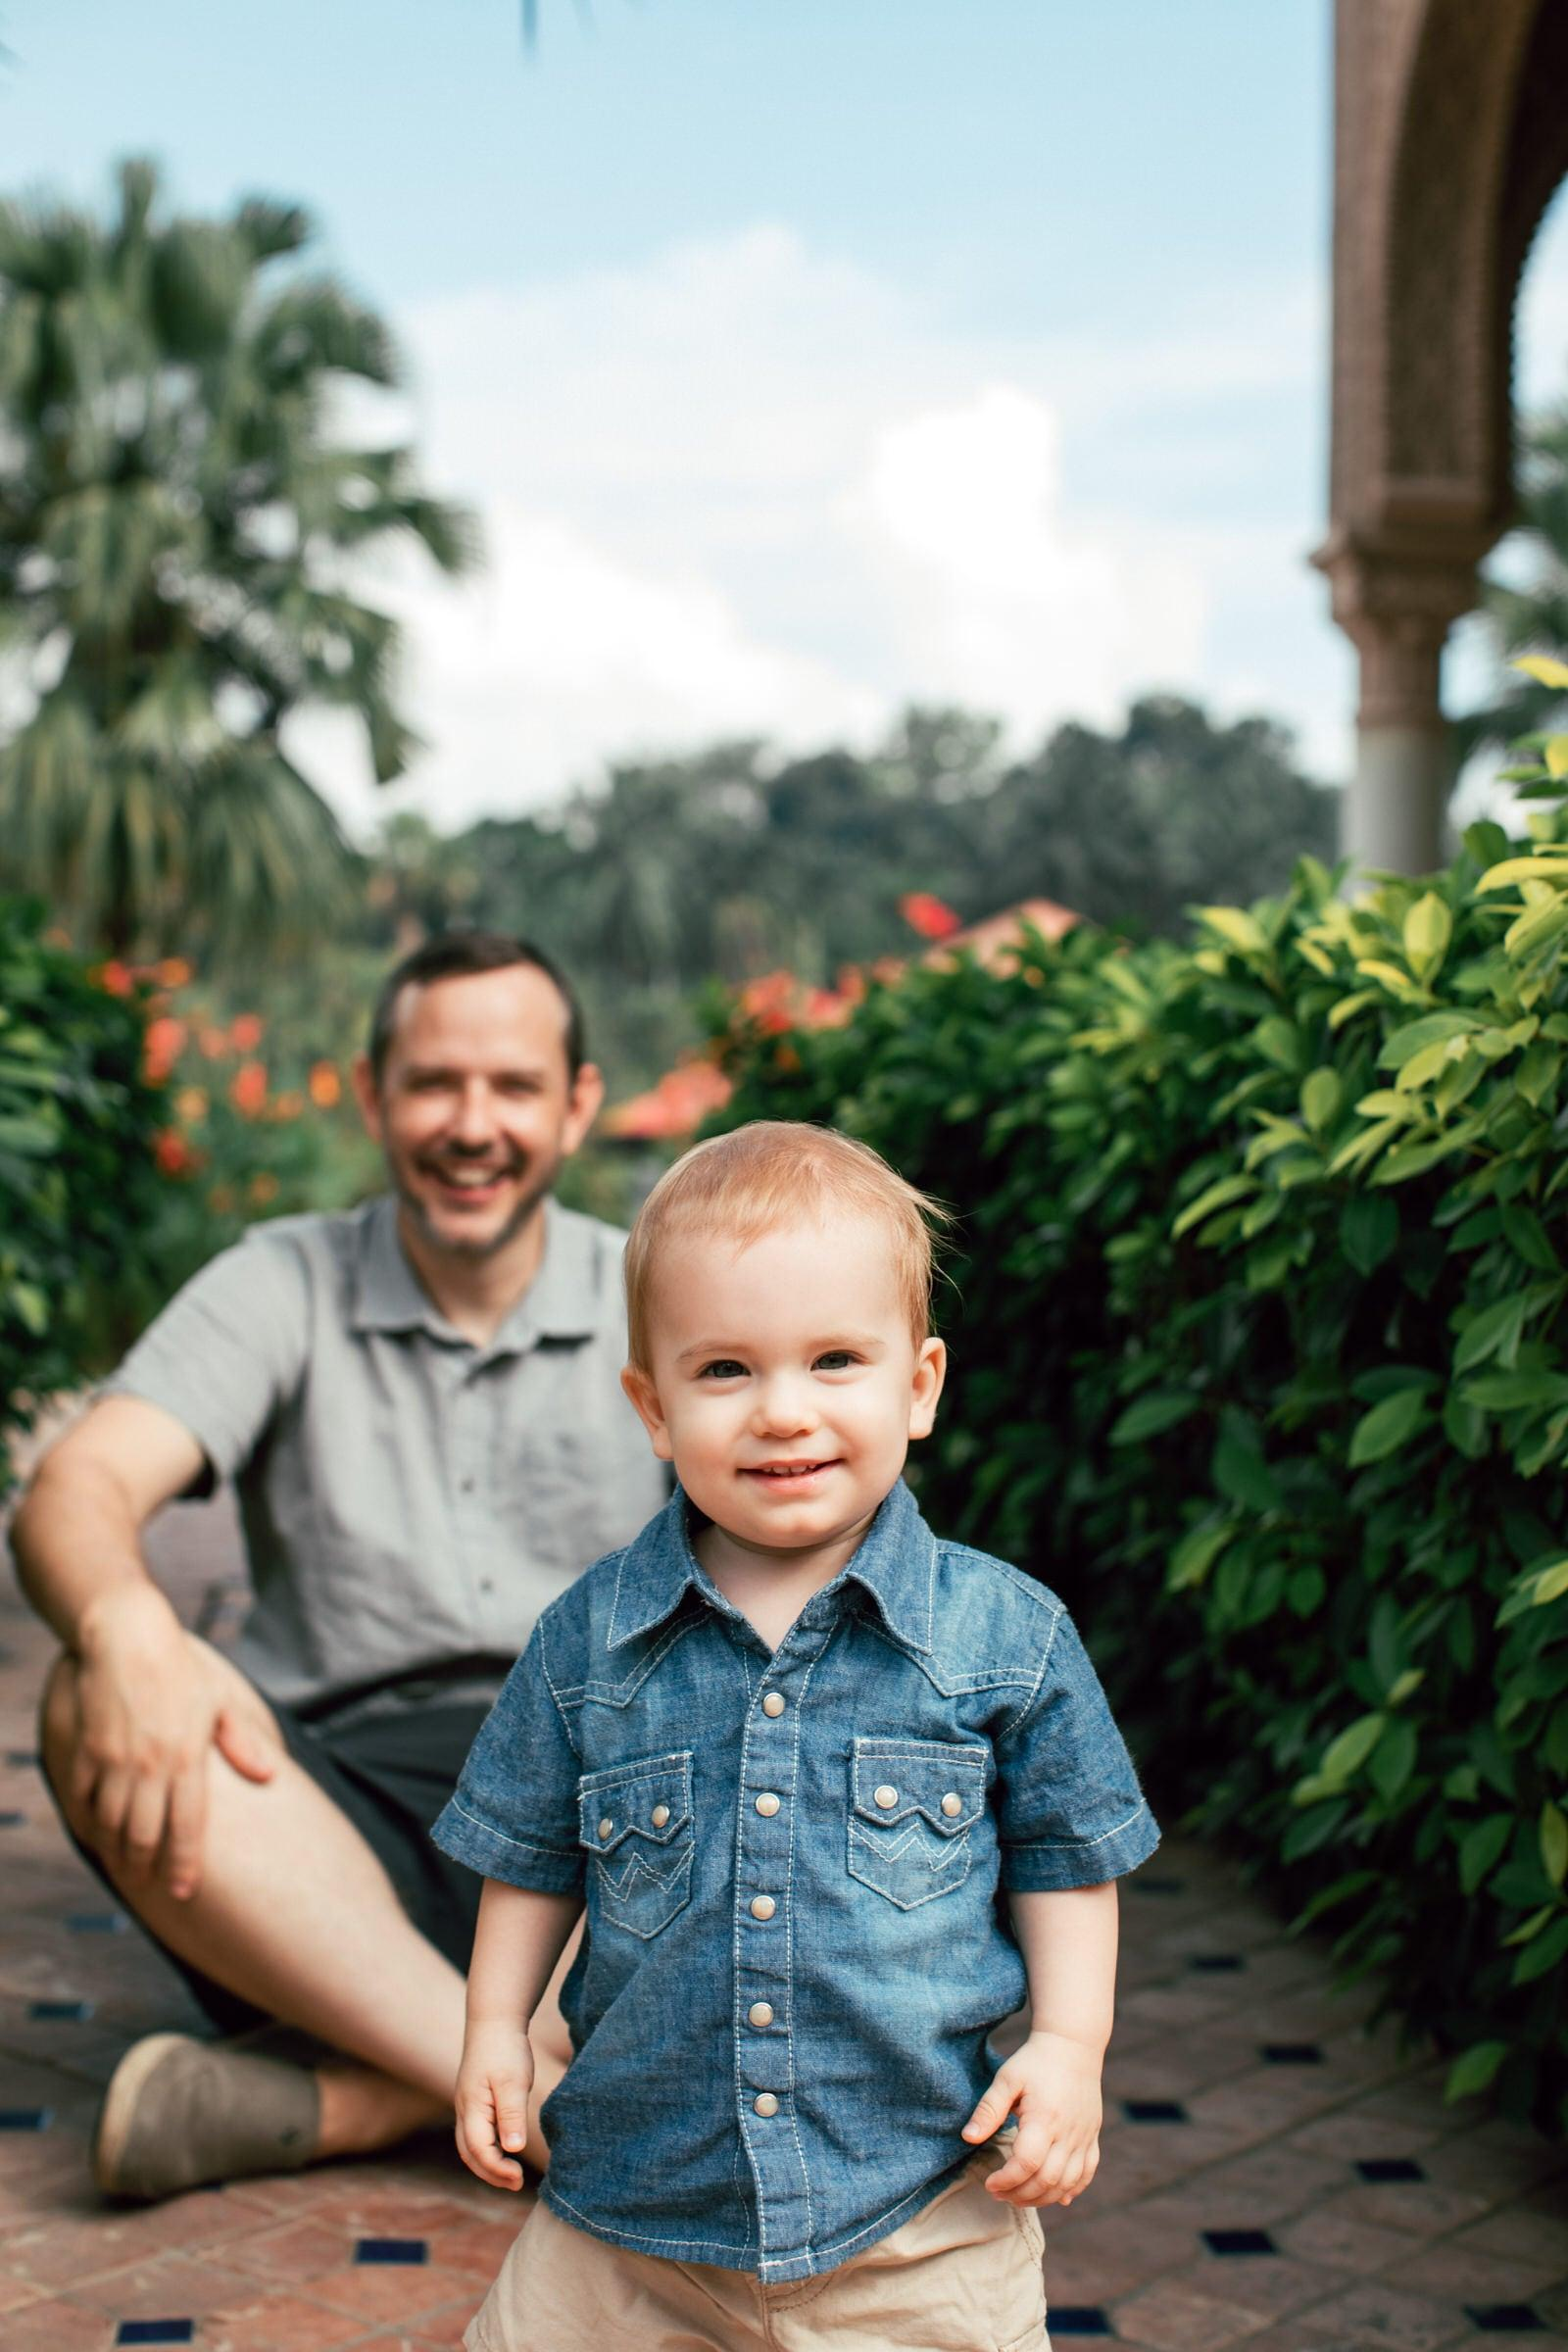 Father and son Putrajaya Family Portrait Session in Kuala Lumpur Malaysia